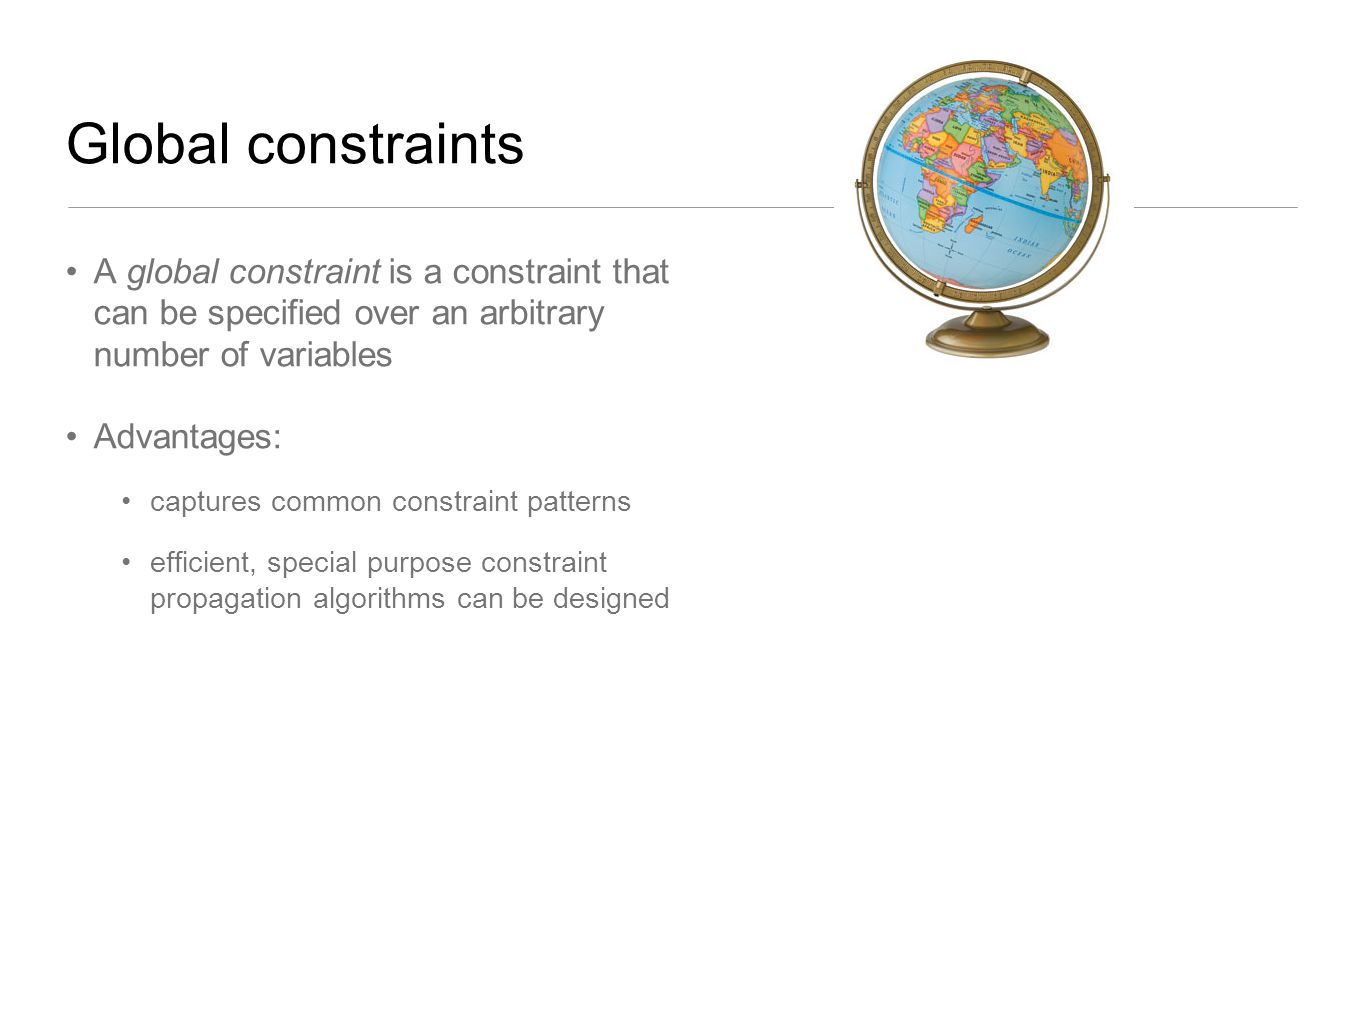 Global constraints A global constraint is a constraint that can be specified over an arbitrary number of variables.